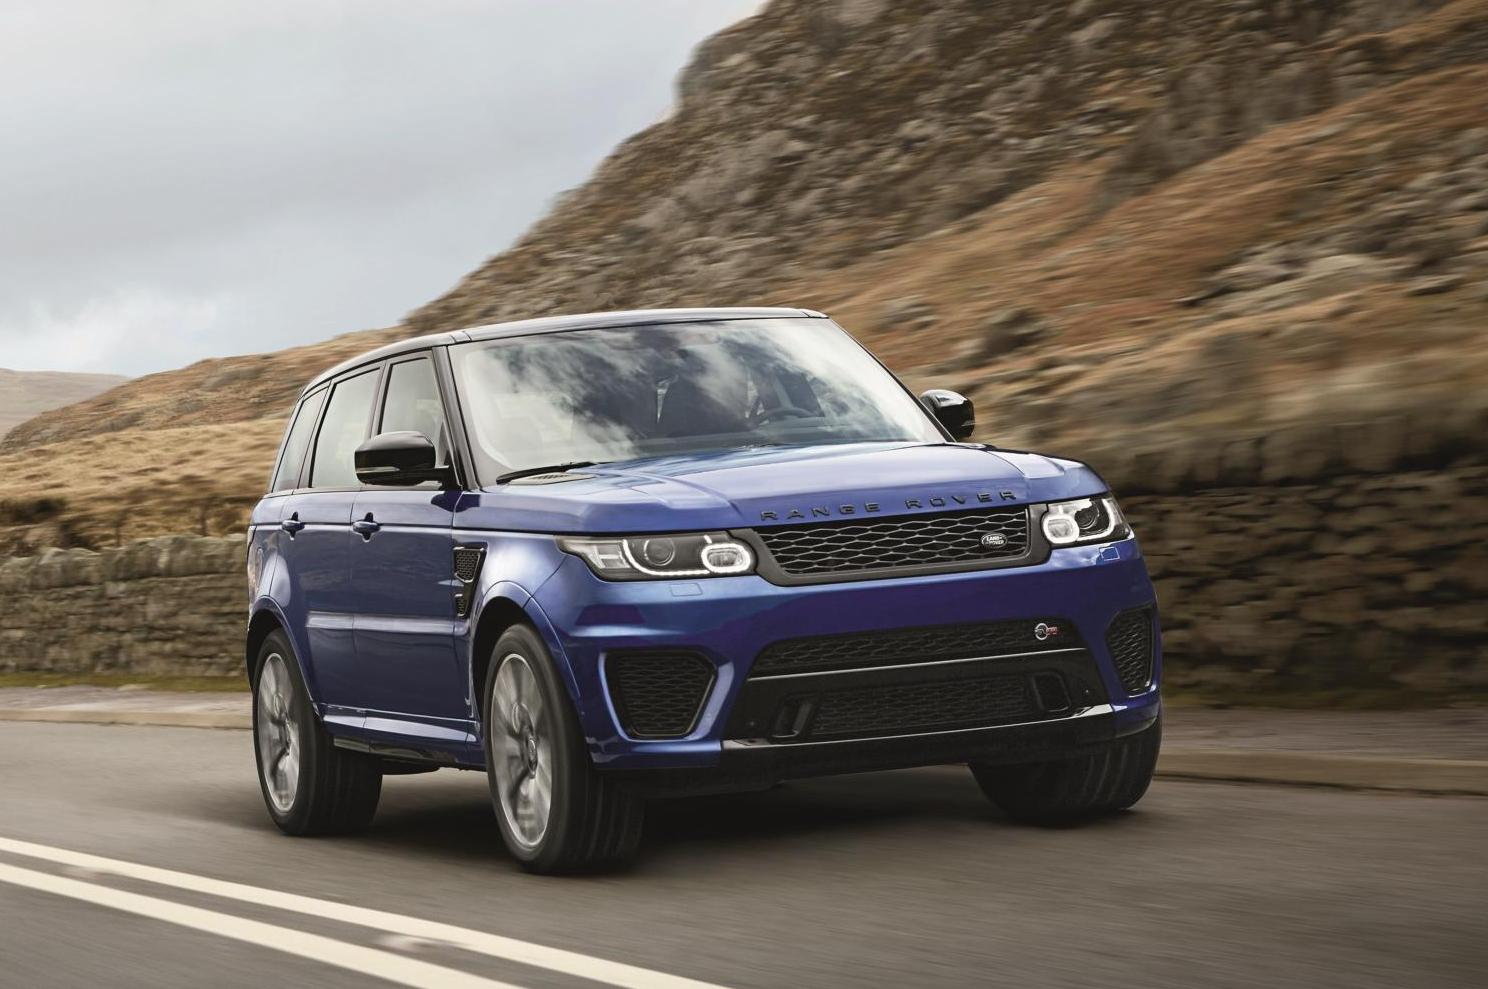 fastest ever range rover sport svr all set for pebble beach global debut india car news. Black Bedroom Furniture Sets. Home Design Ideas